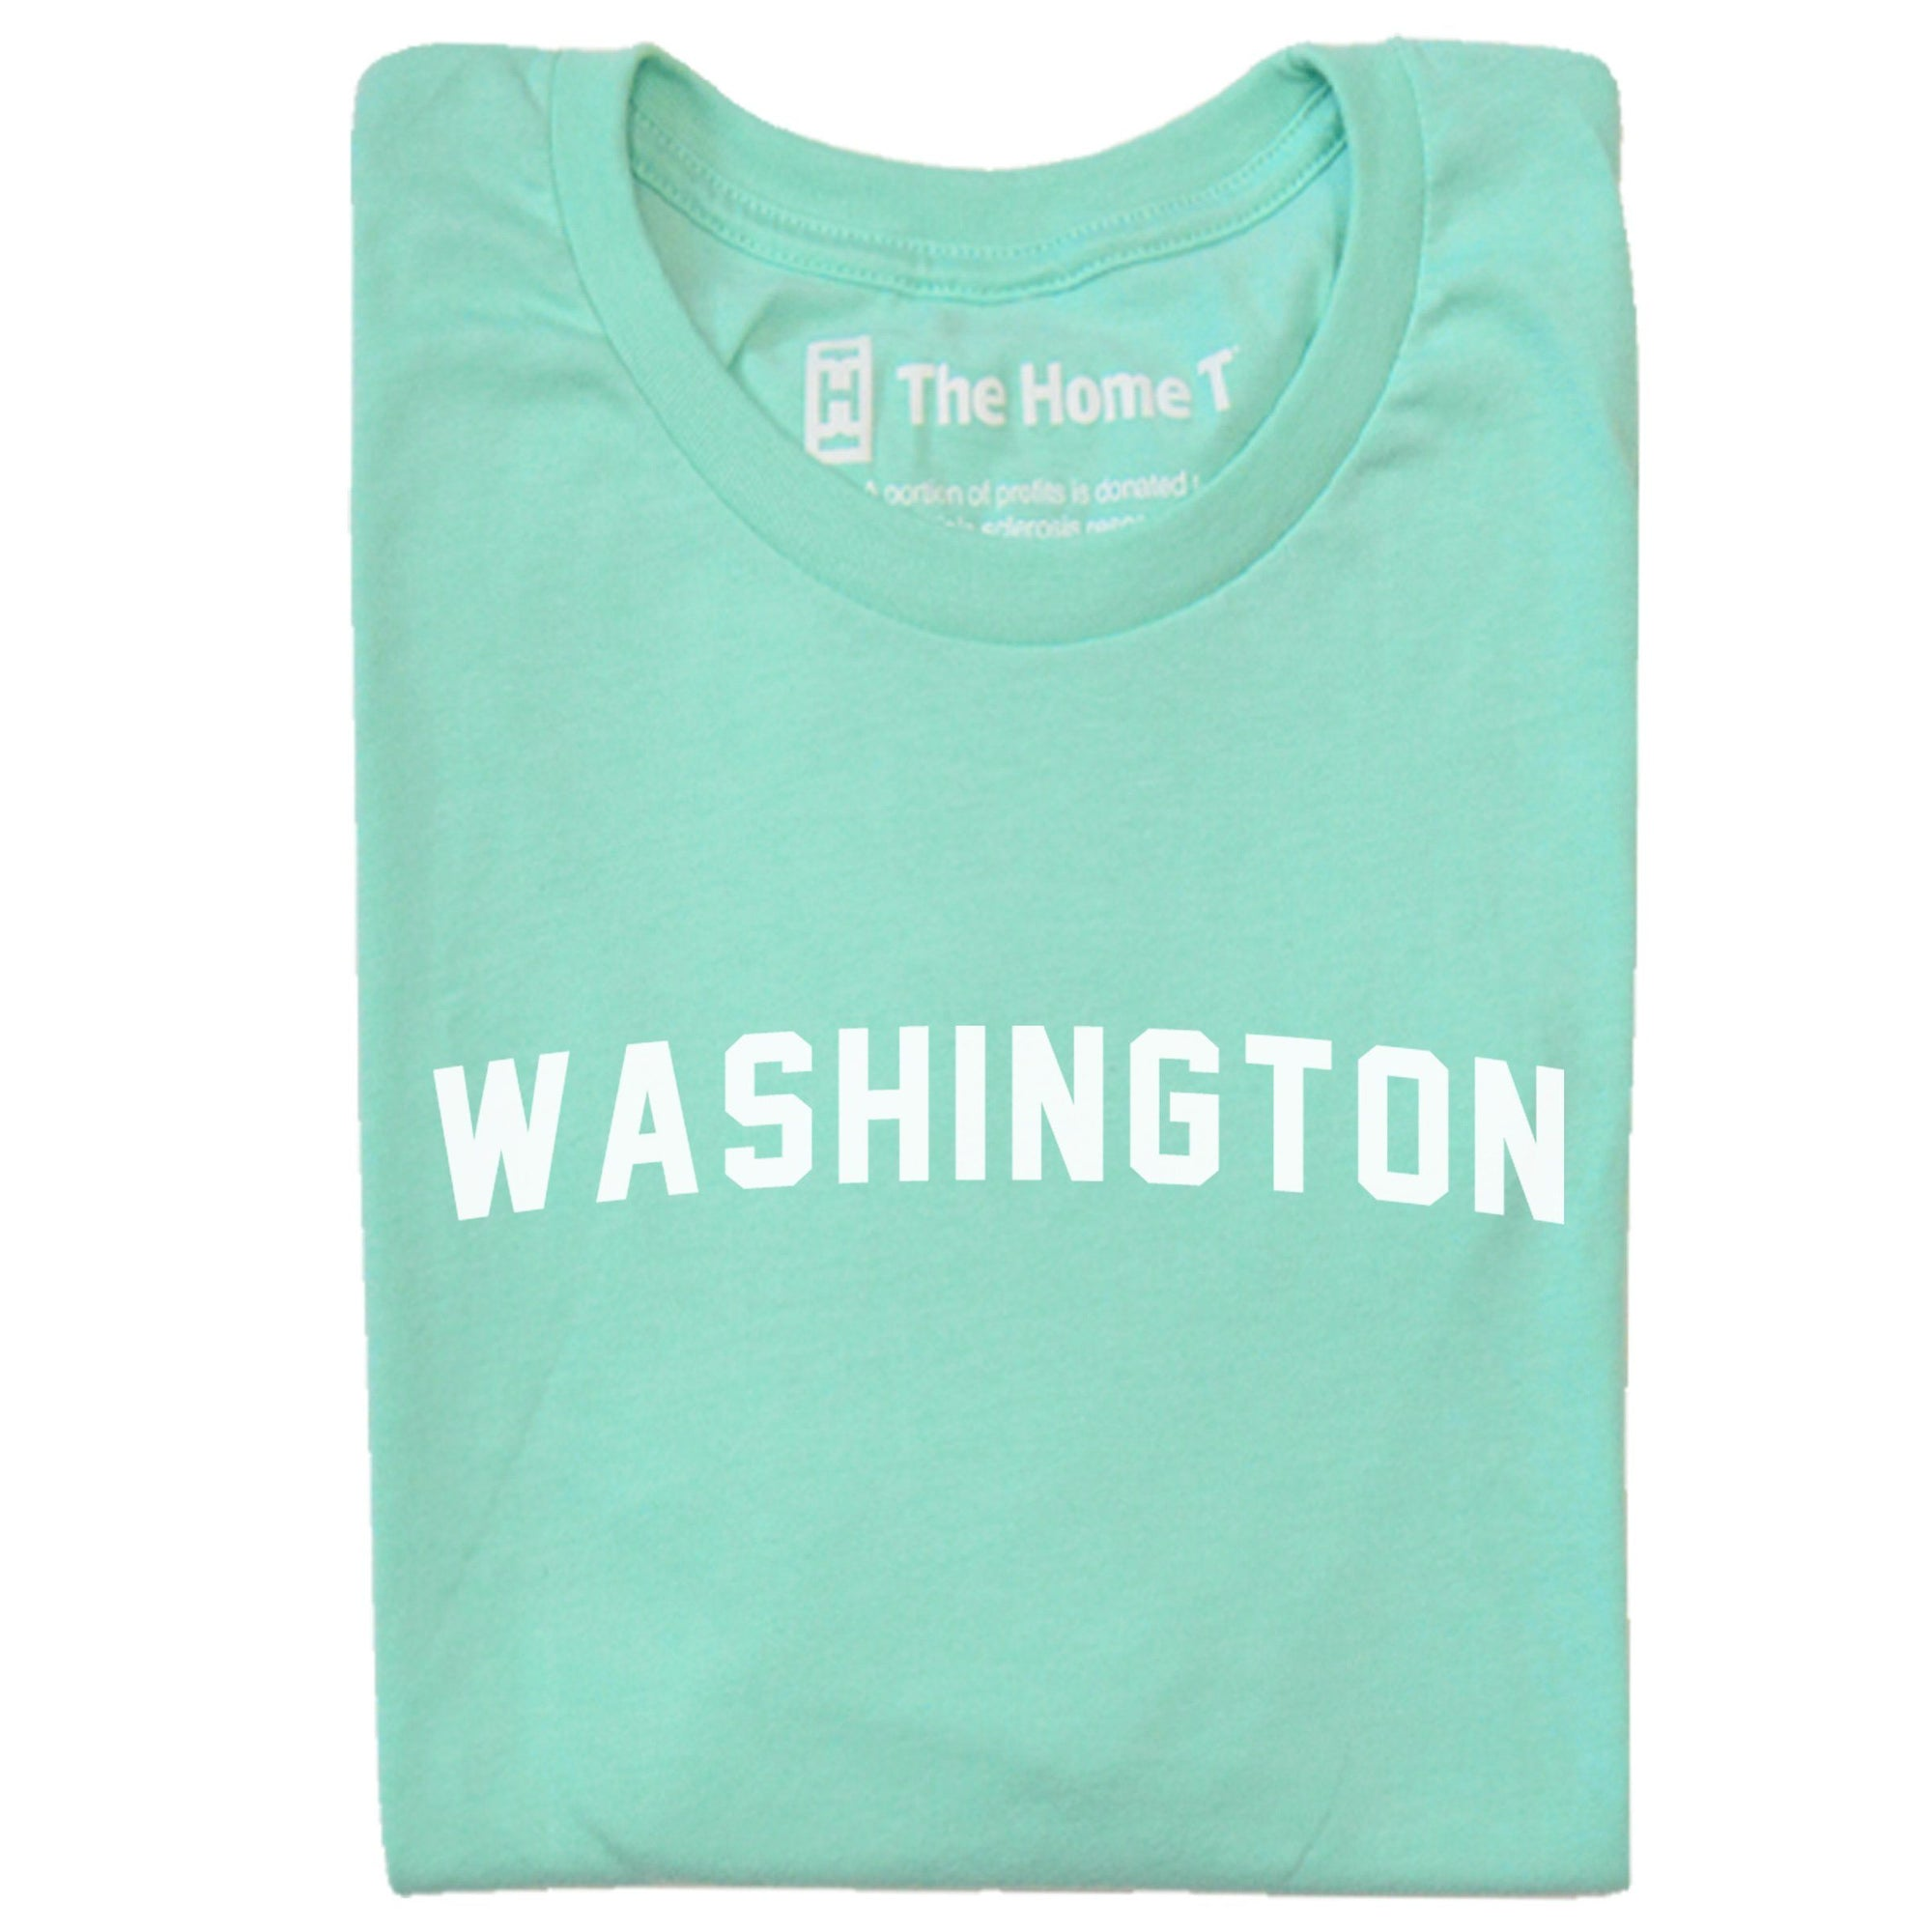 Washington Arched The Home T XS Mint